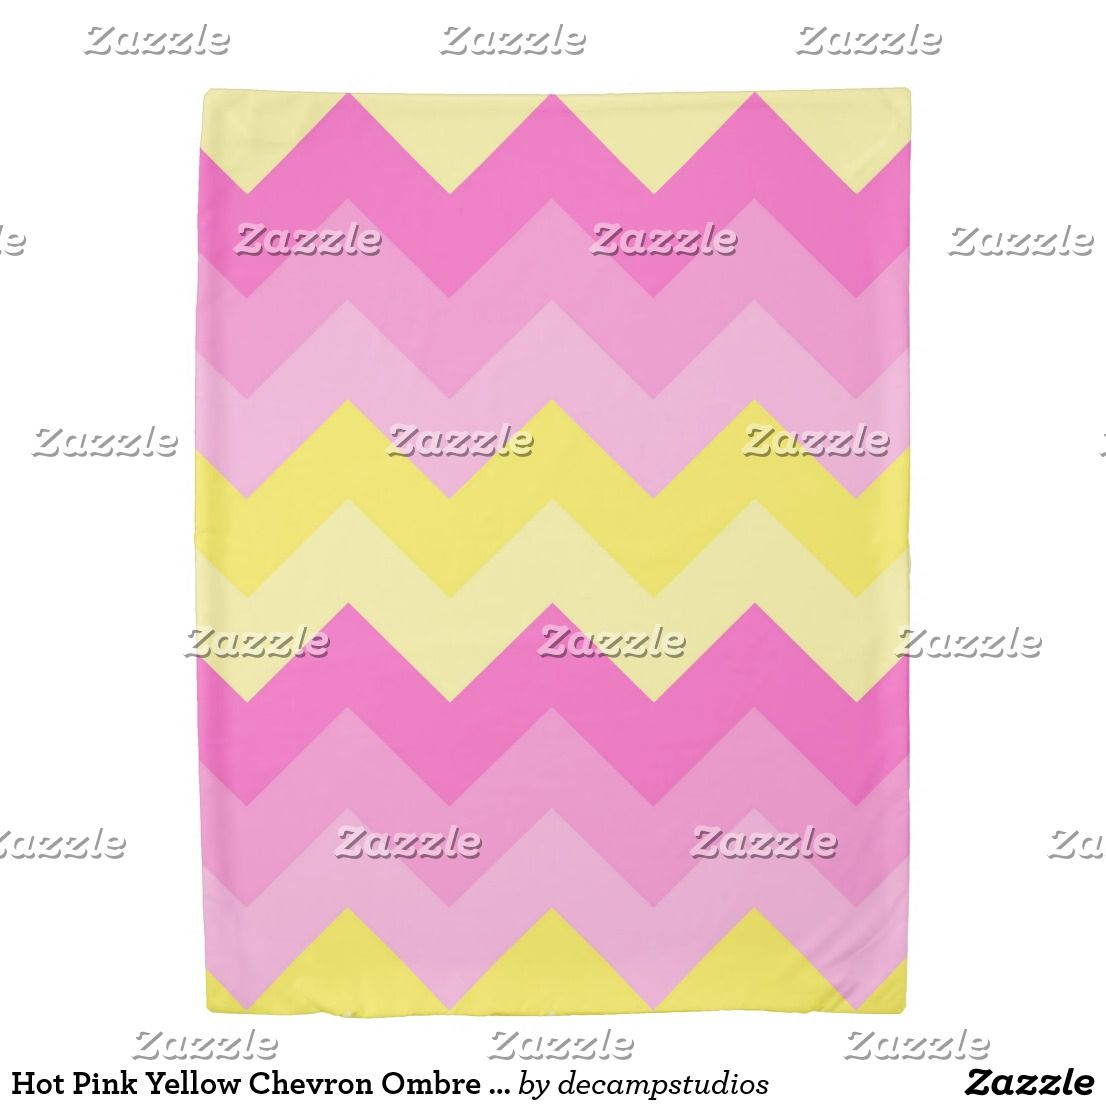 Hot Pink Yellow Chevron Ombre Zigzag Pattern Duvet Cover | Yellow ...